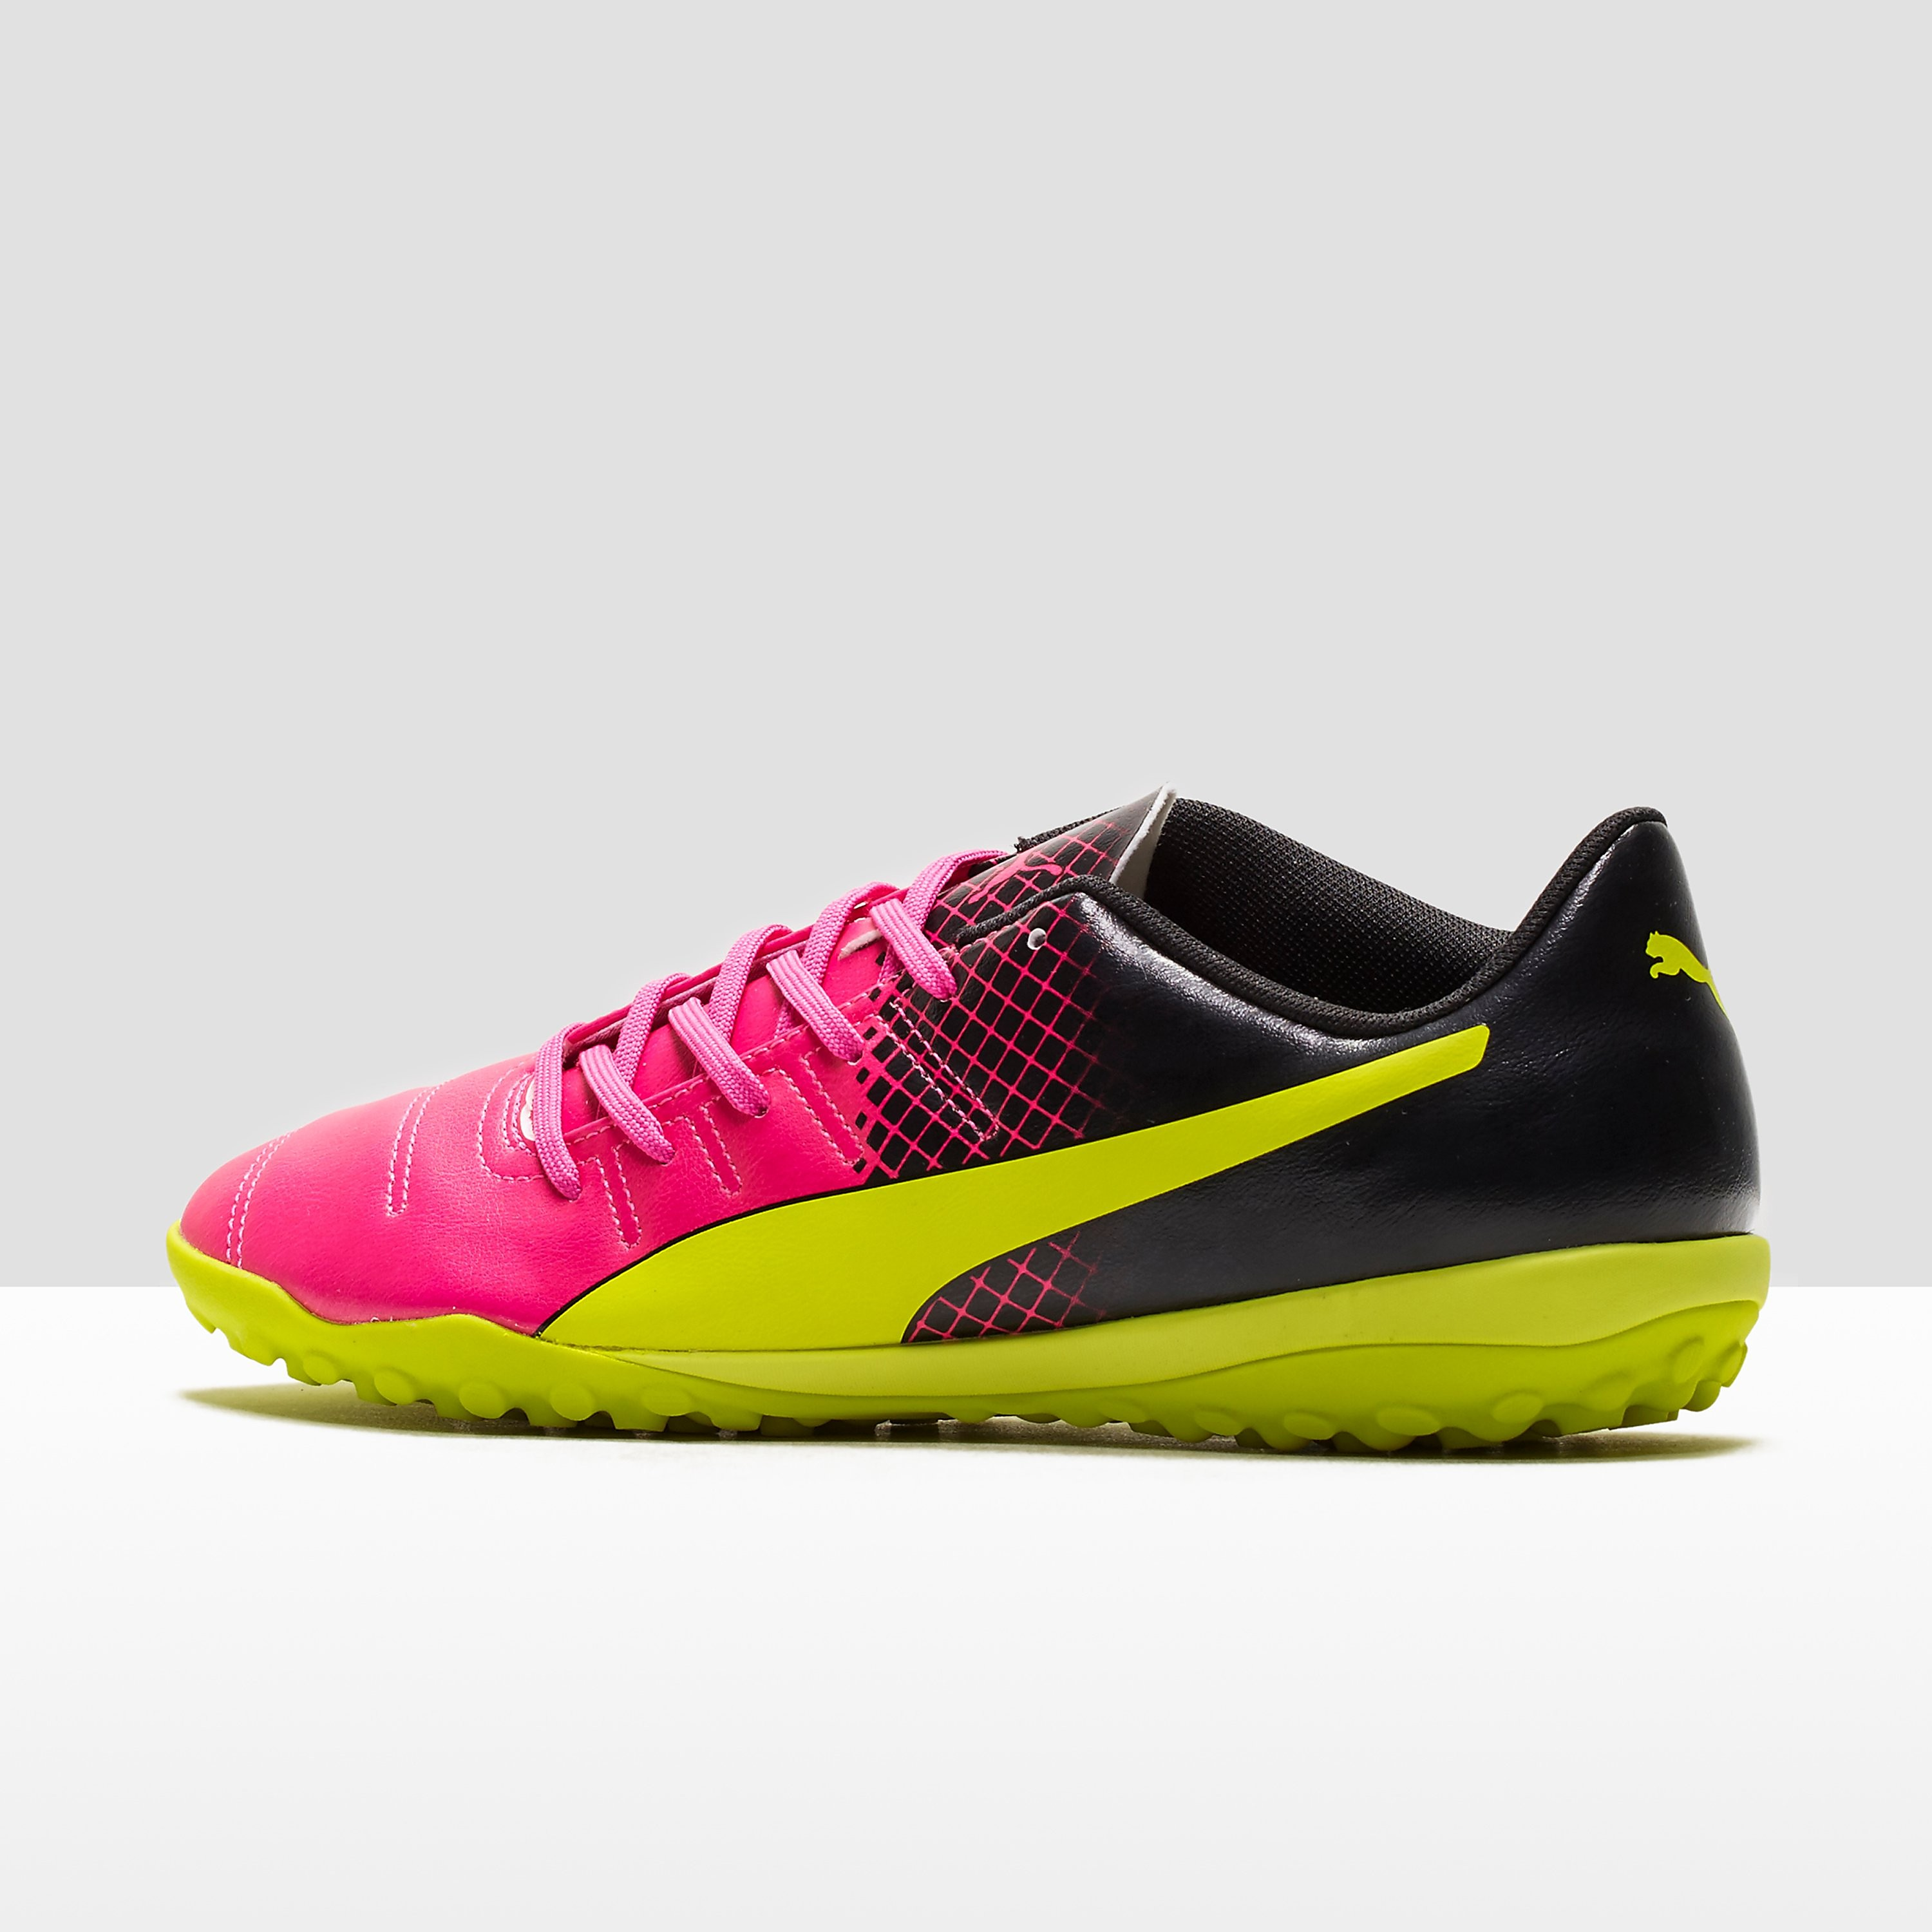 Puma evoPOWER 4.3 Men's Tricks Turf Training Boots